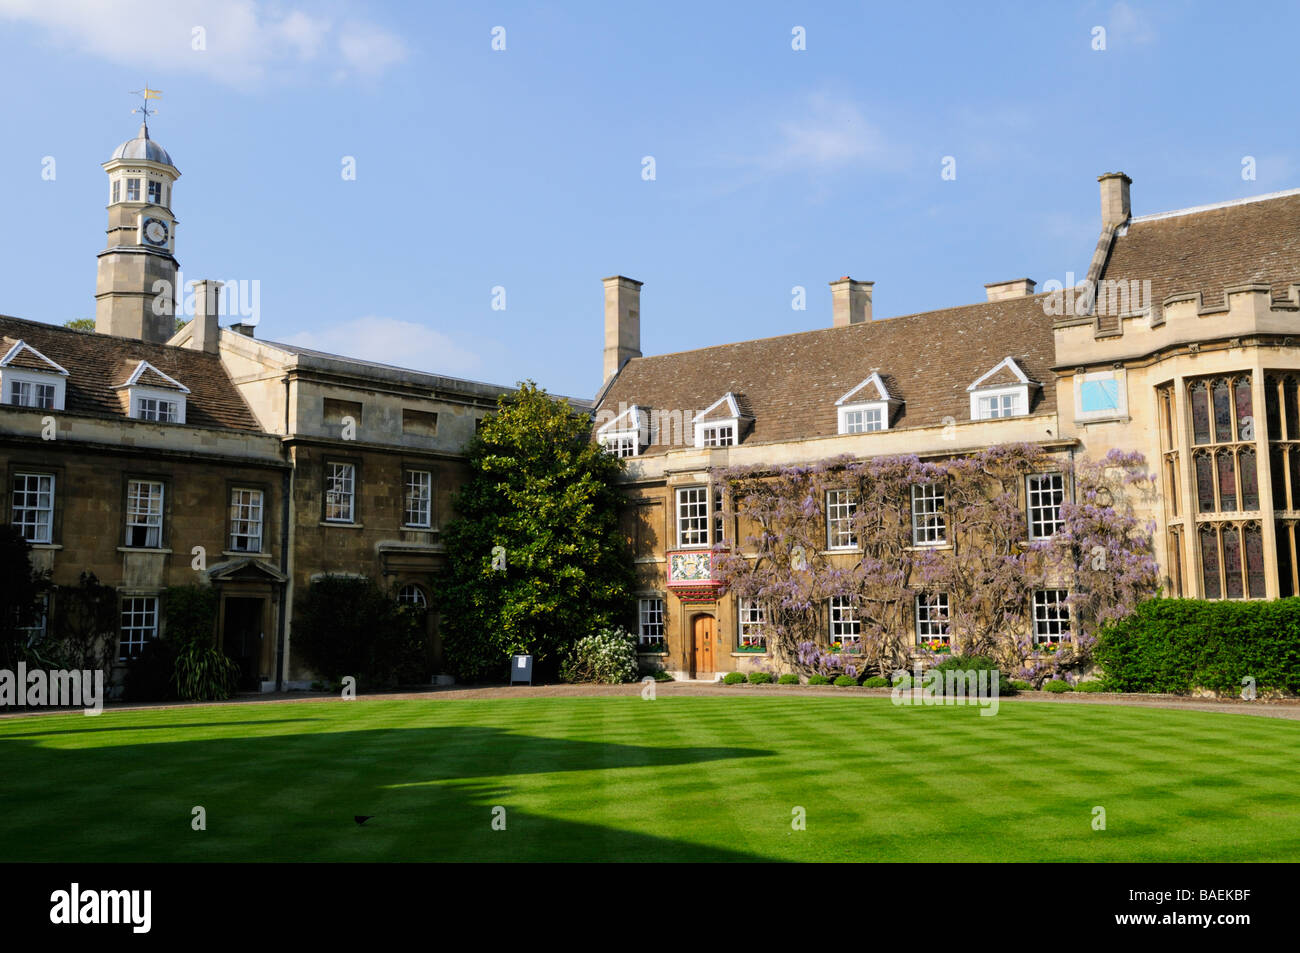 First Court in Christs College Cambridge England Uk - Stock Image